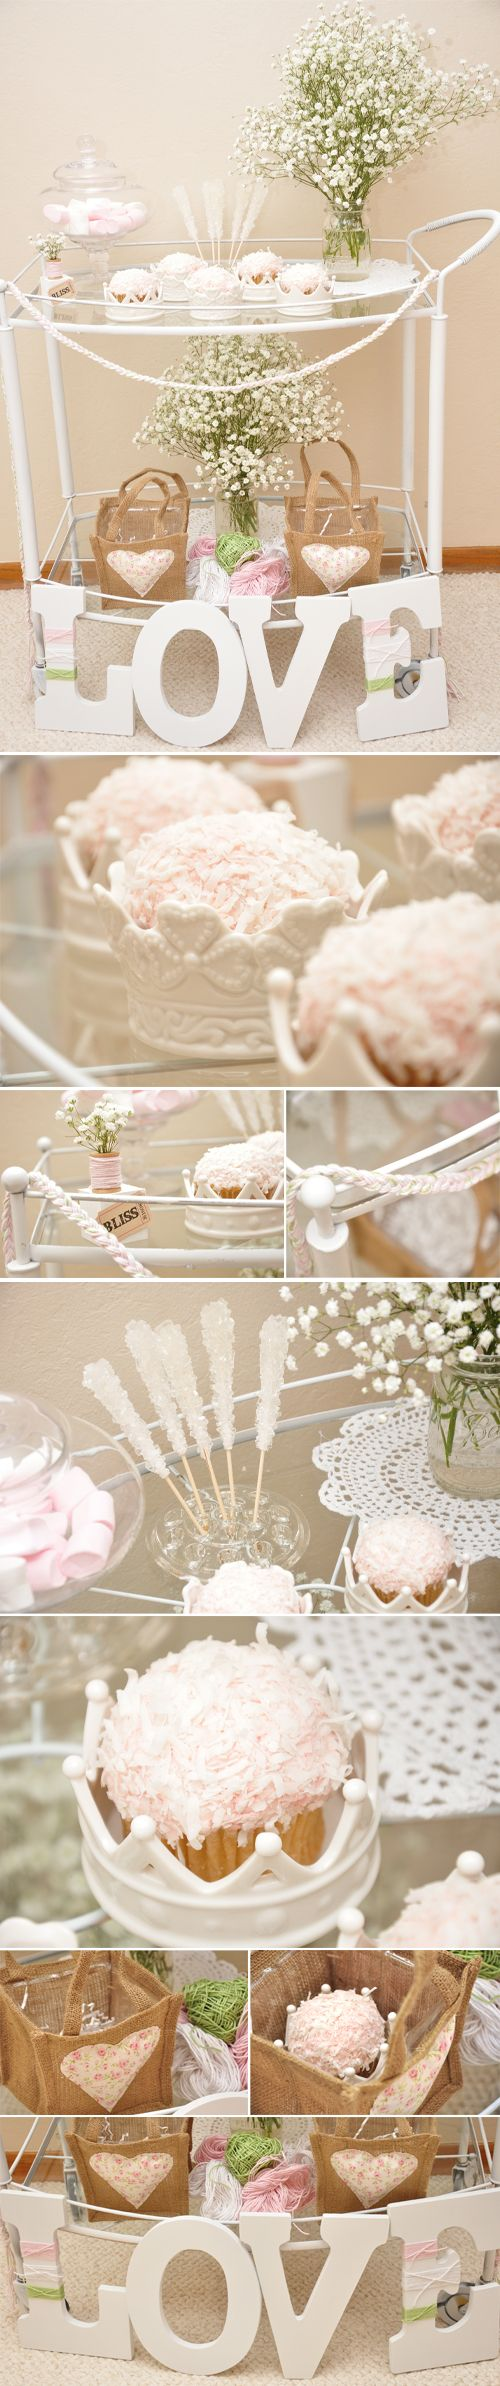 """""""Your Ticket To Love"""" bridal shower - in love with the details of this party"""